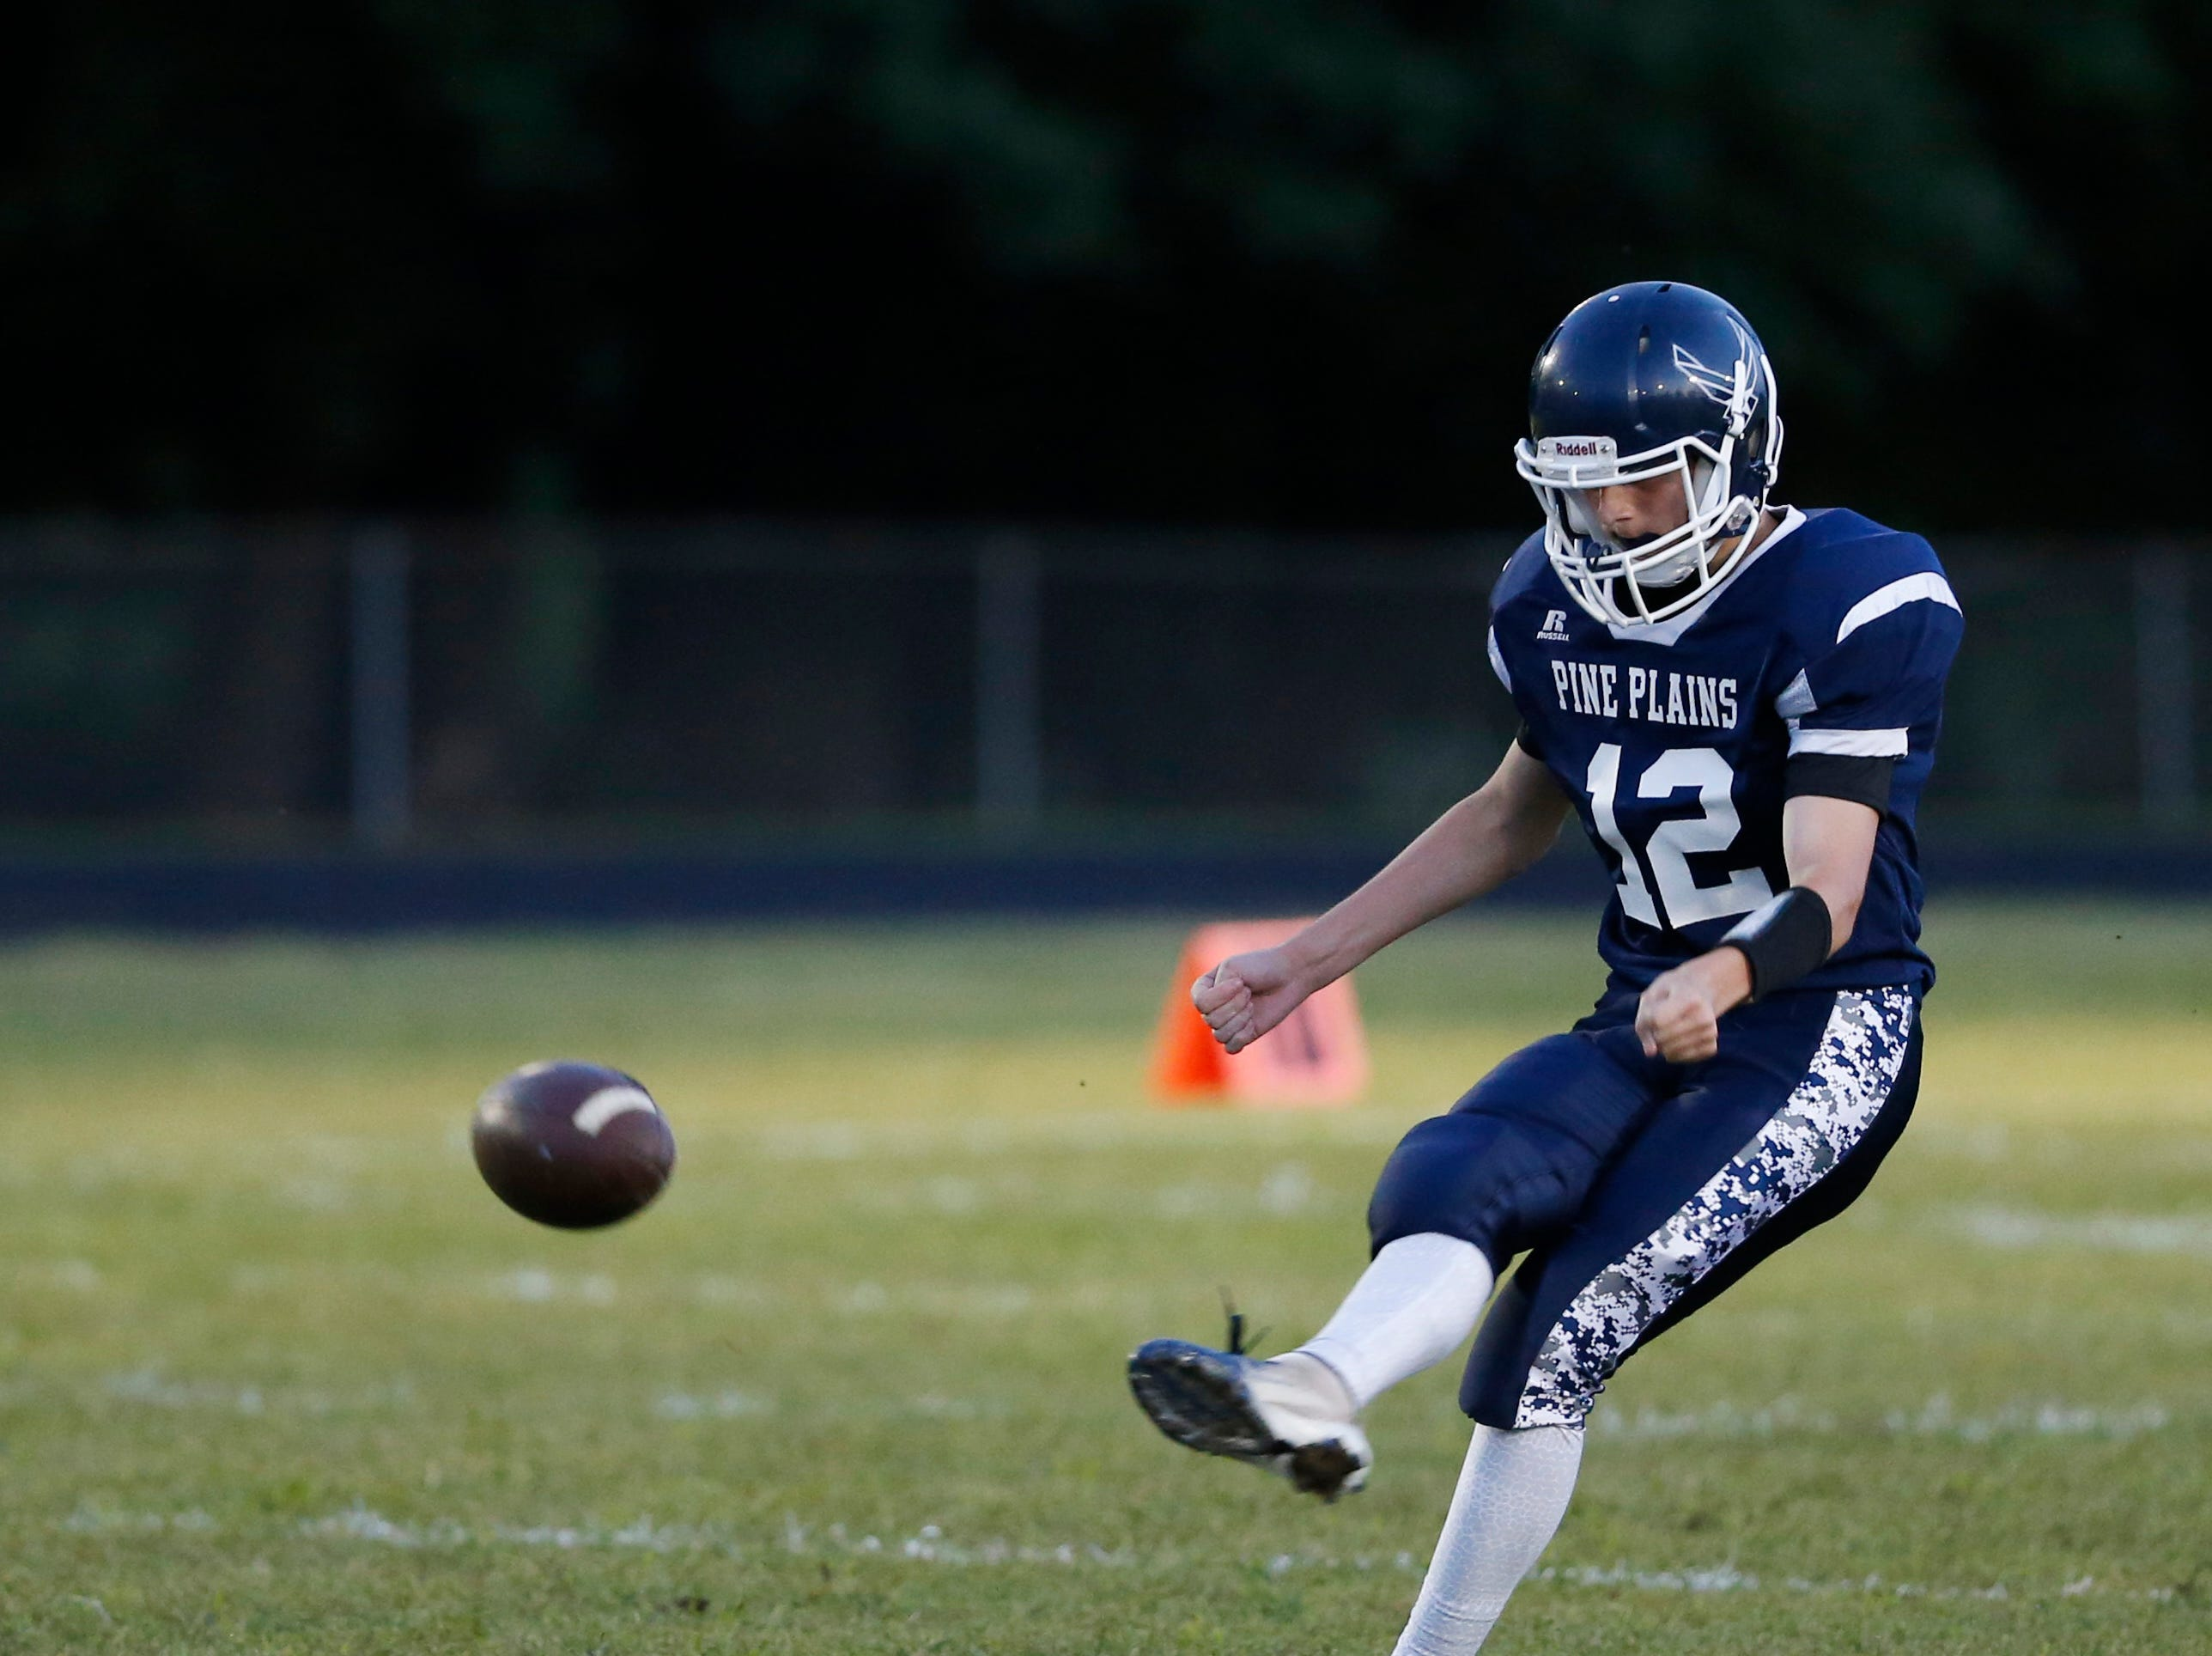 Pine Plains' Dylan Parks kicks off during Friday's game versus Roscoe at Stissing Mountain High School on September 7, 2018.